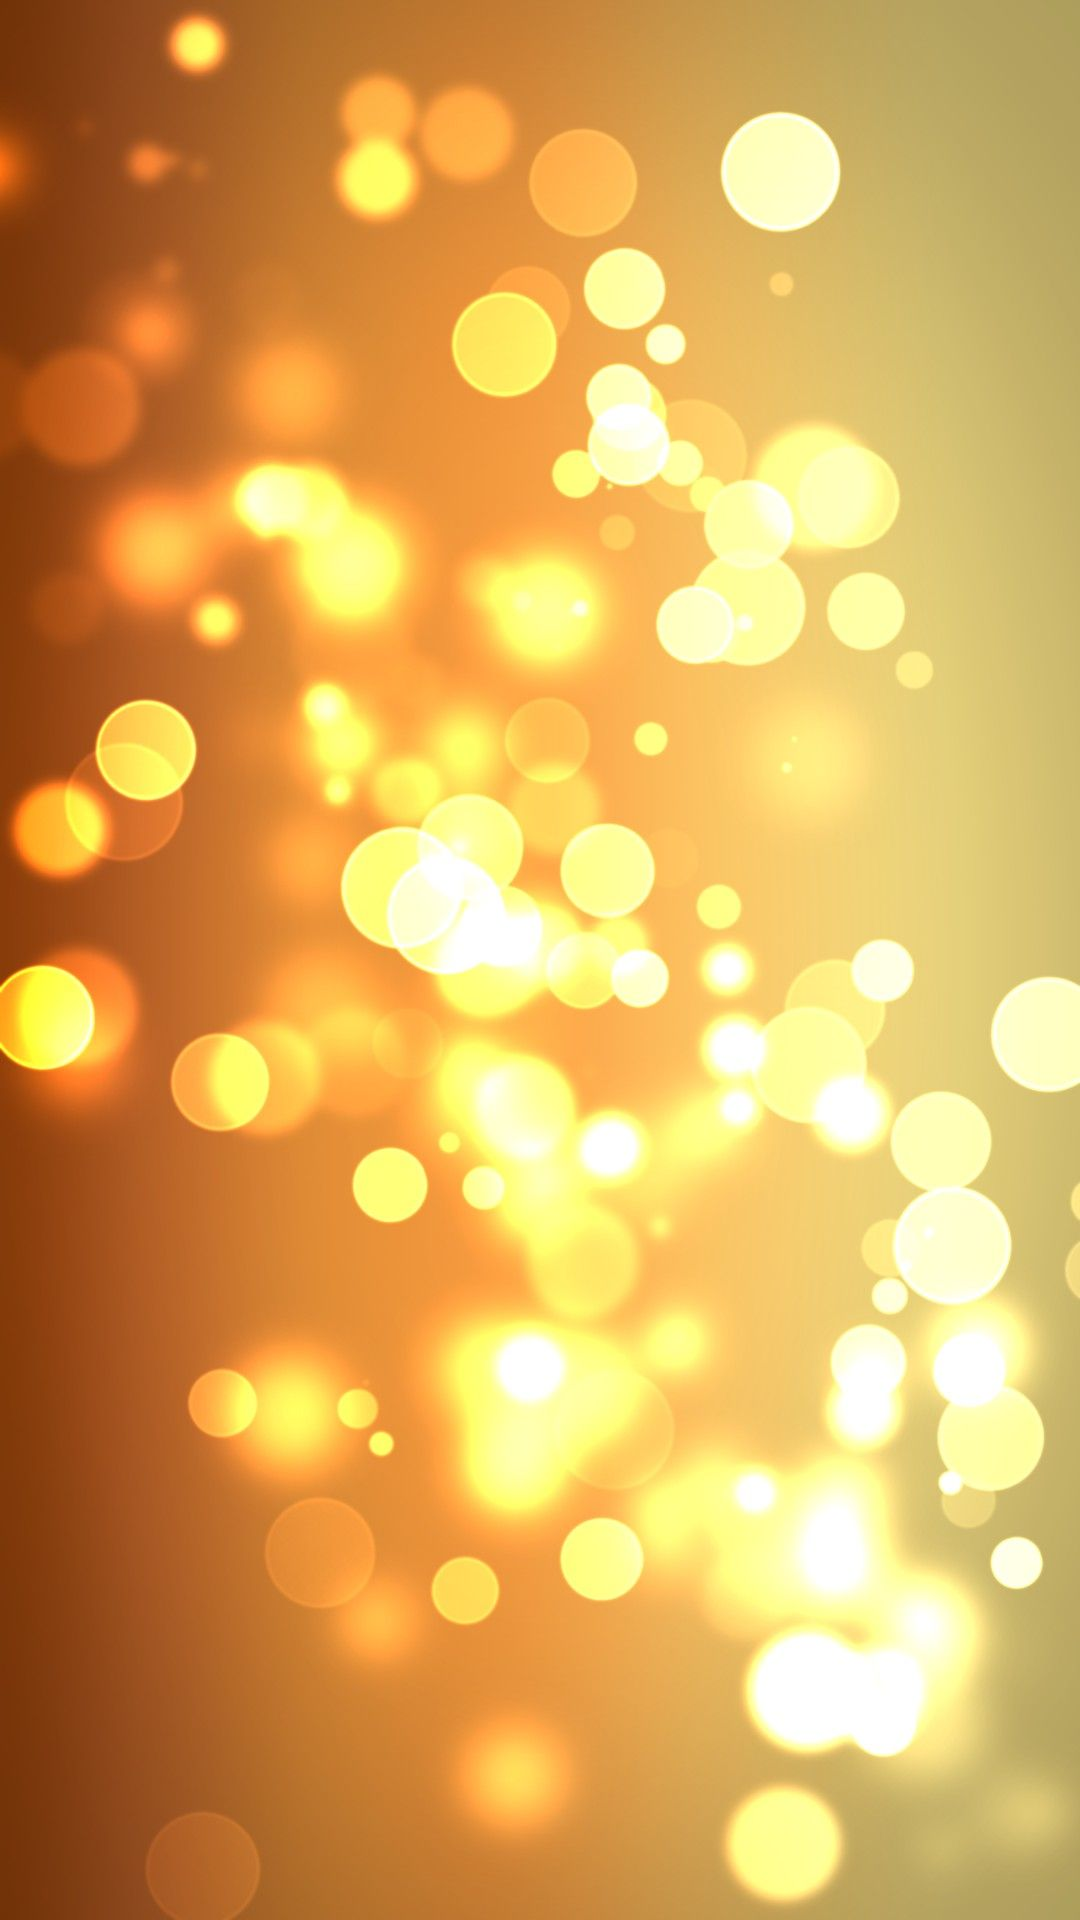 Gold Sparkle Wallpaper For Iphone Gold Sparkle Wallpaper